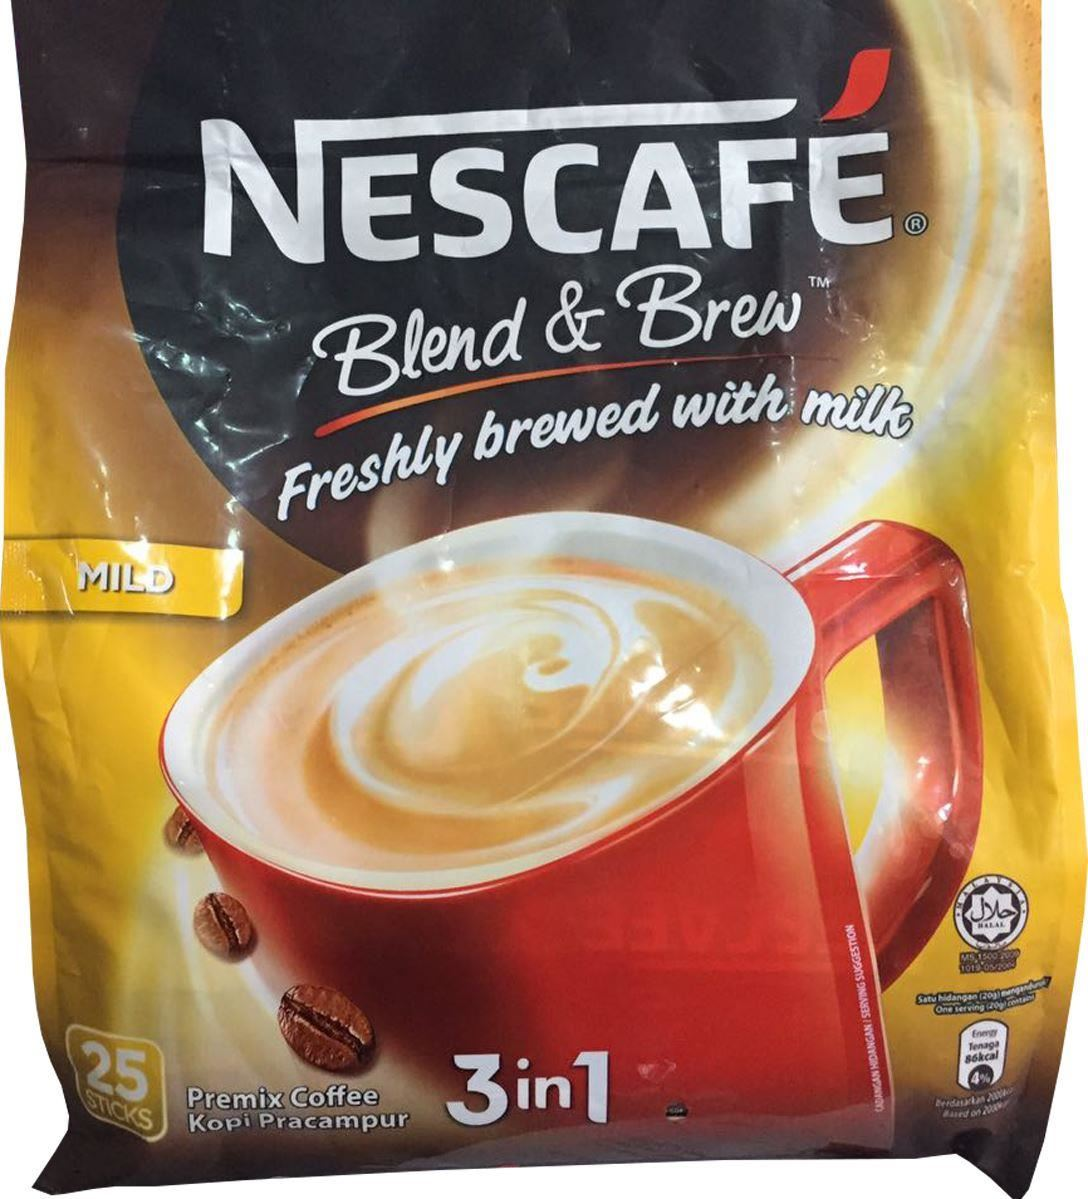 nescafe blend and brew instructions